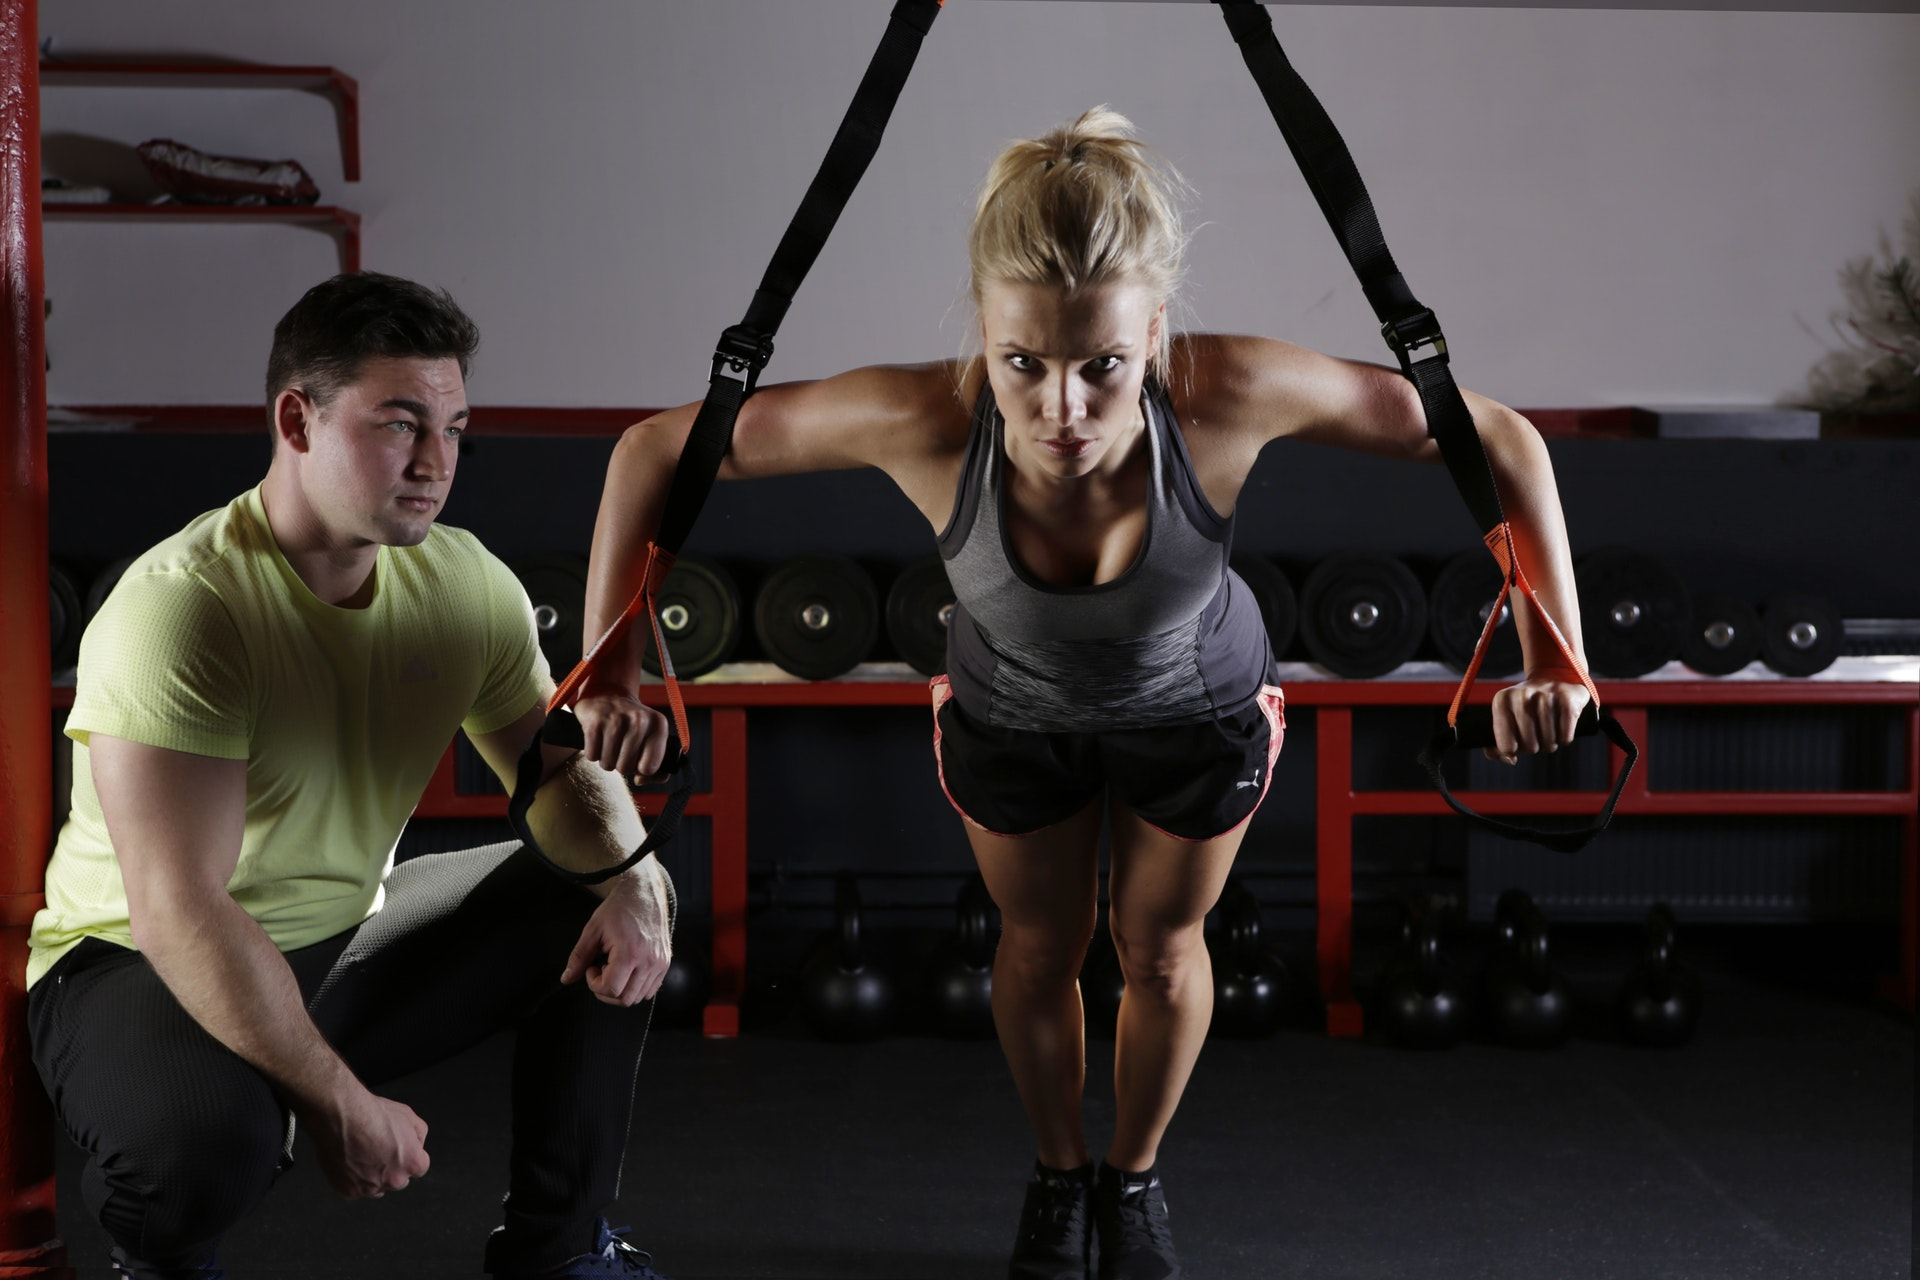 A personal trainer working with client